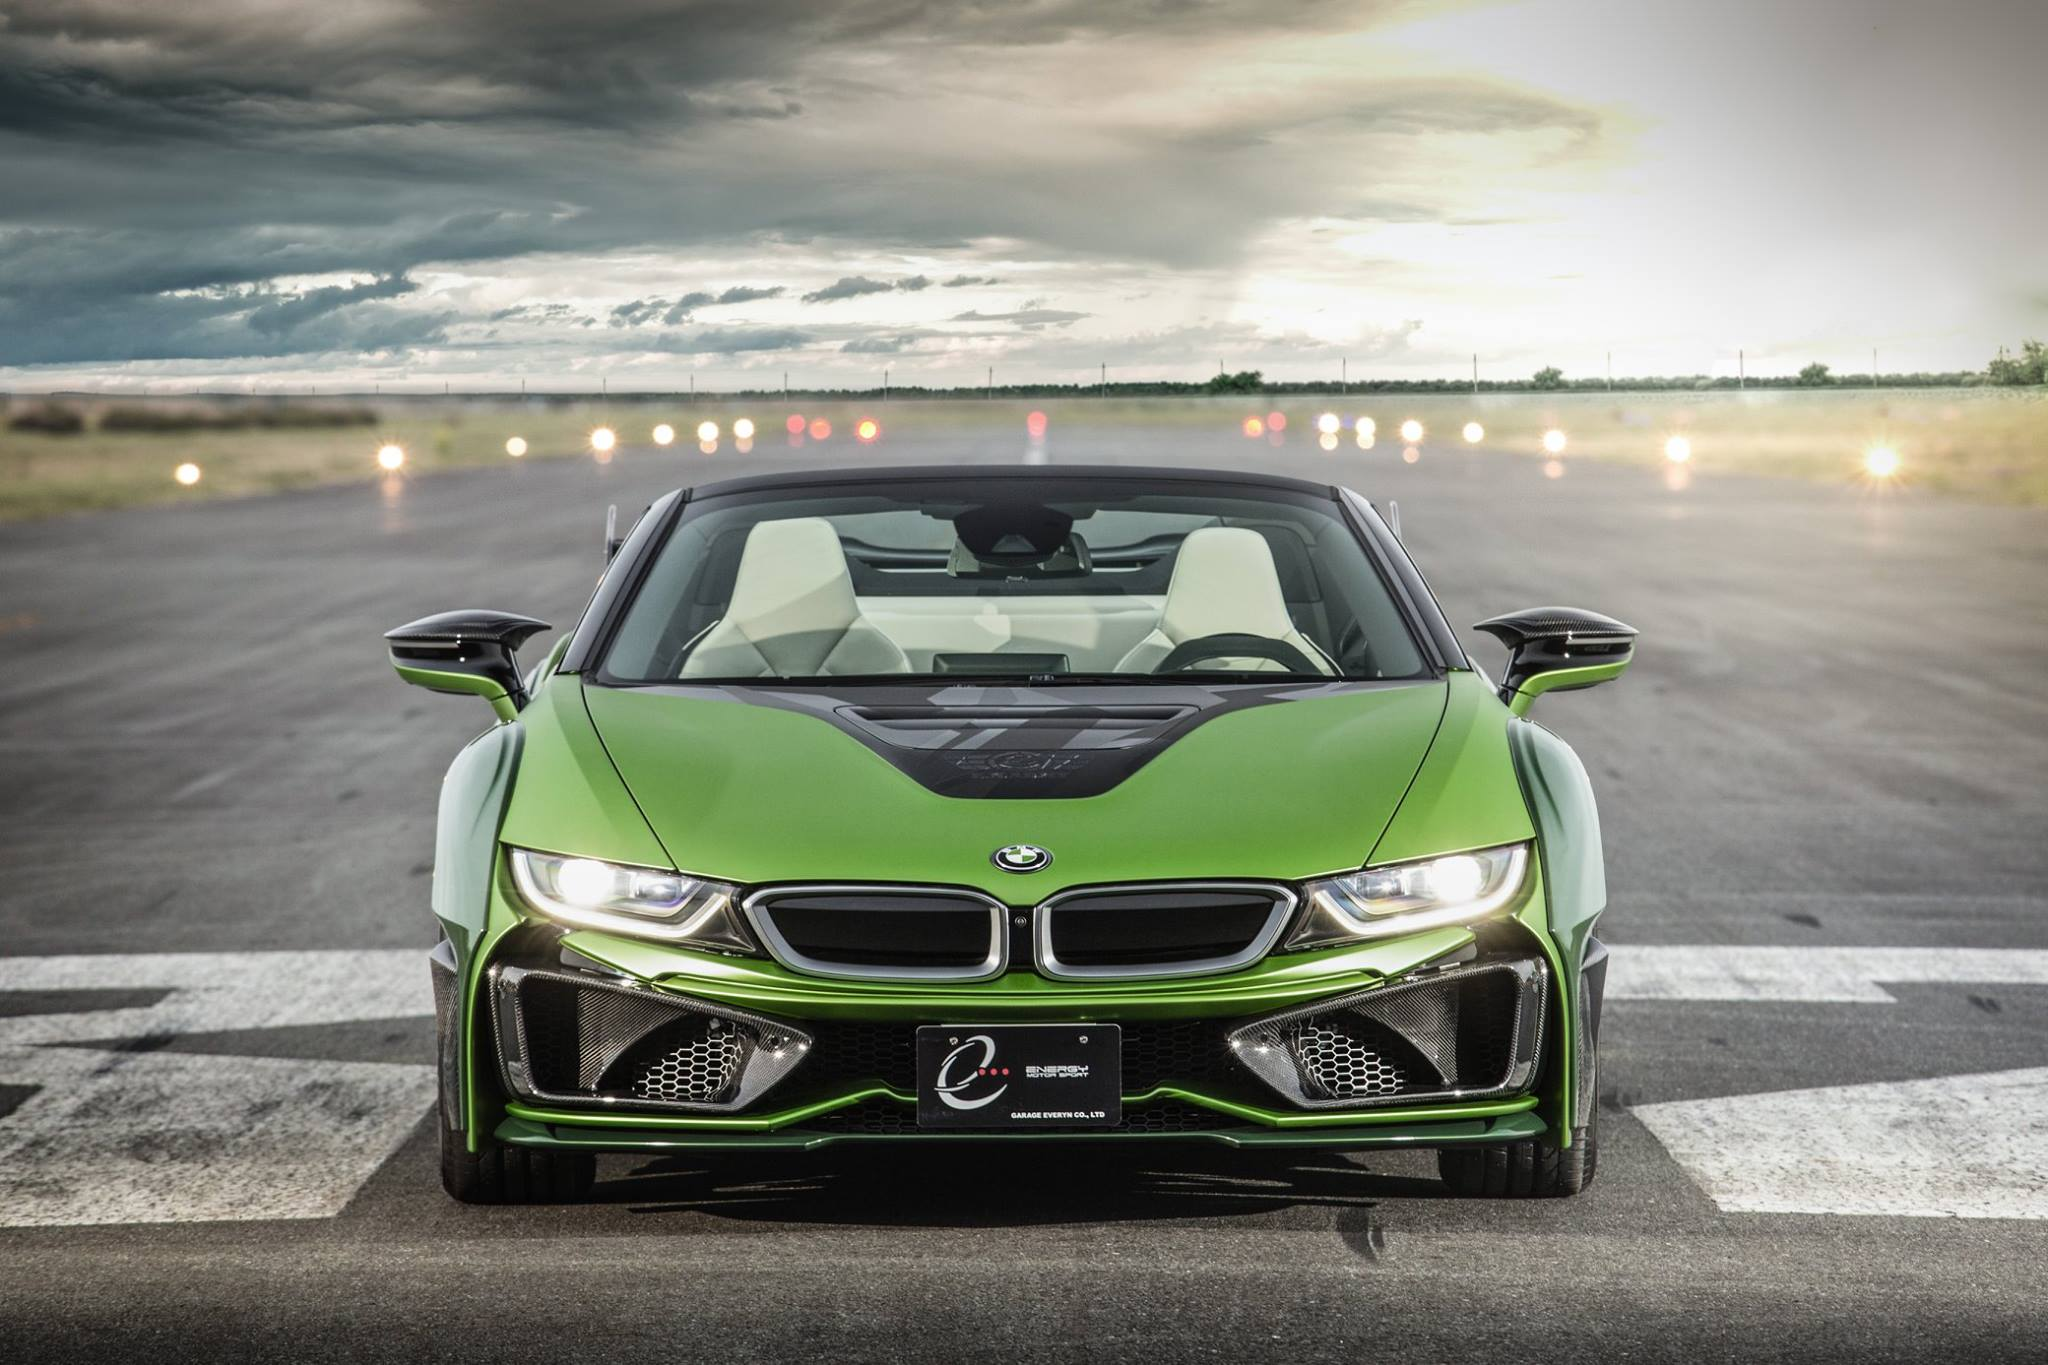 BMW-i8-Roadster-Army-Edition-by-EVE.RYN-6